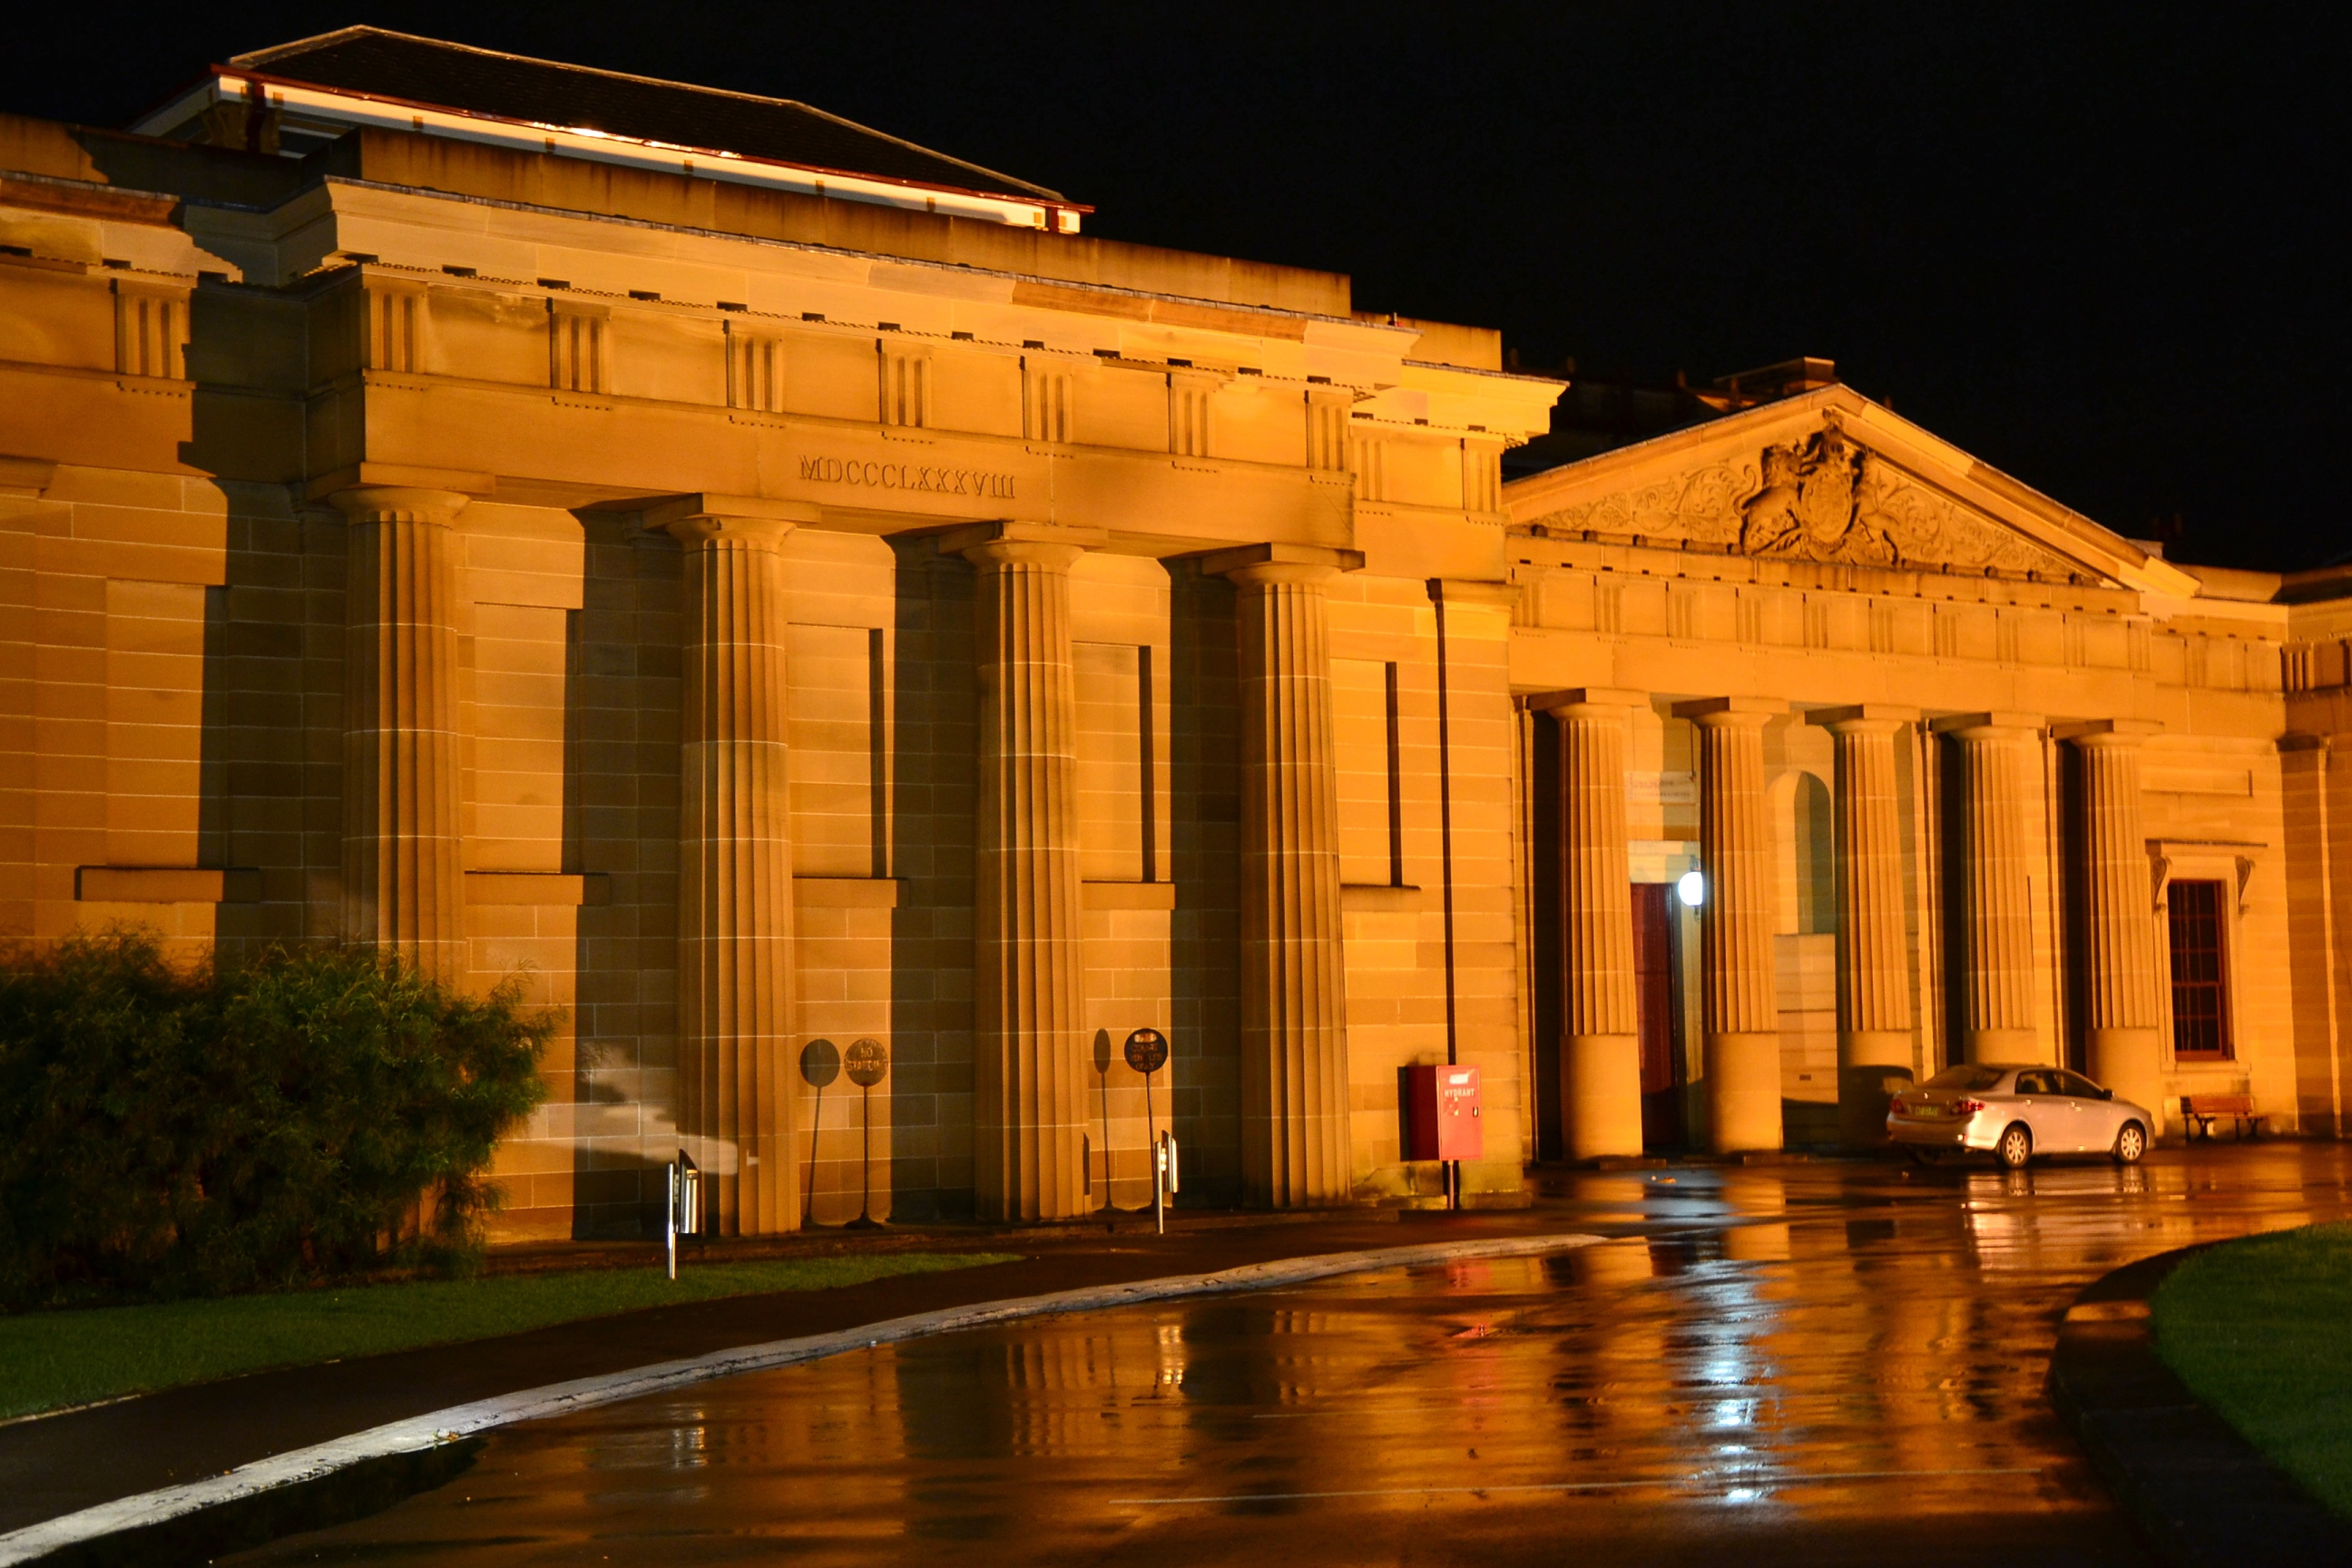 The Darlinghurst Courthouse is an heritage-listed courthouse.